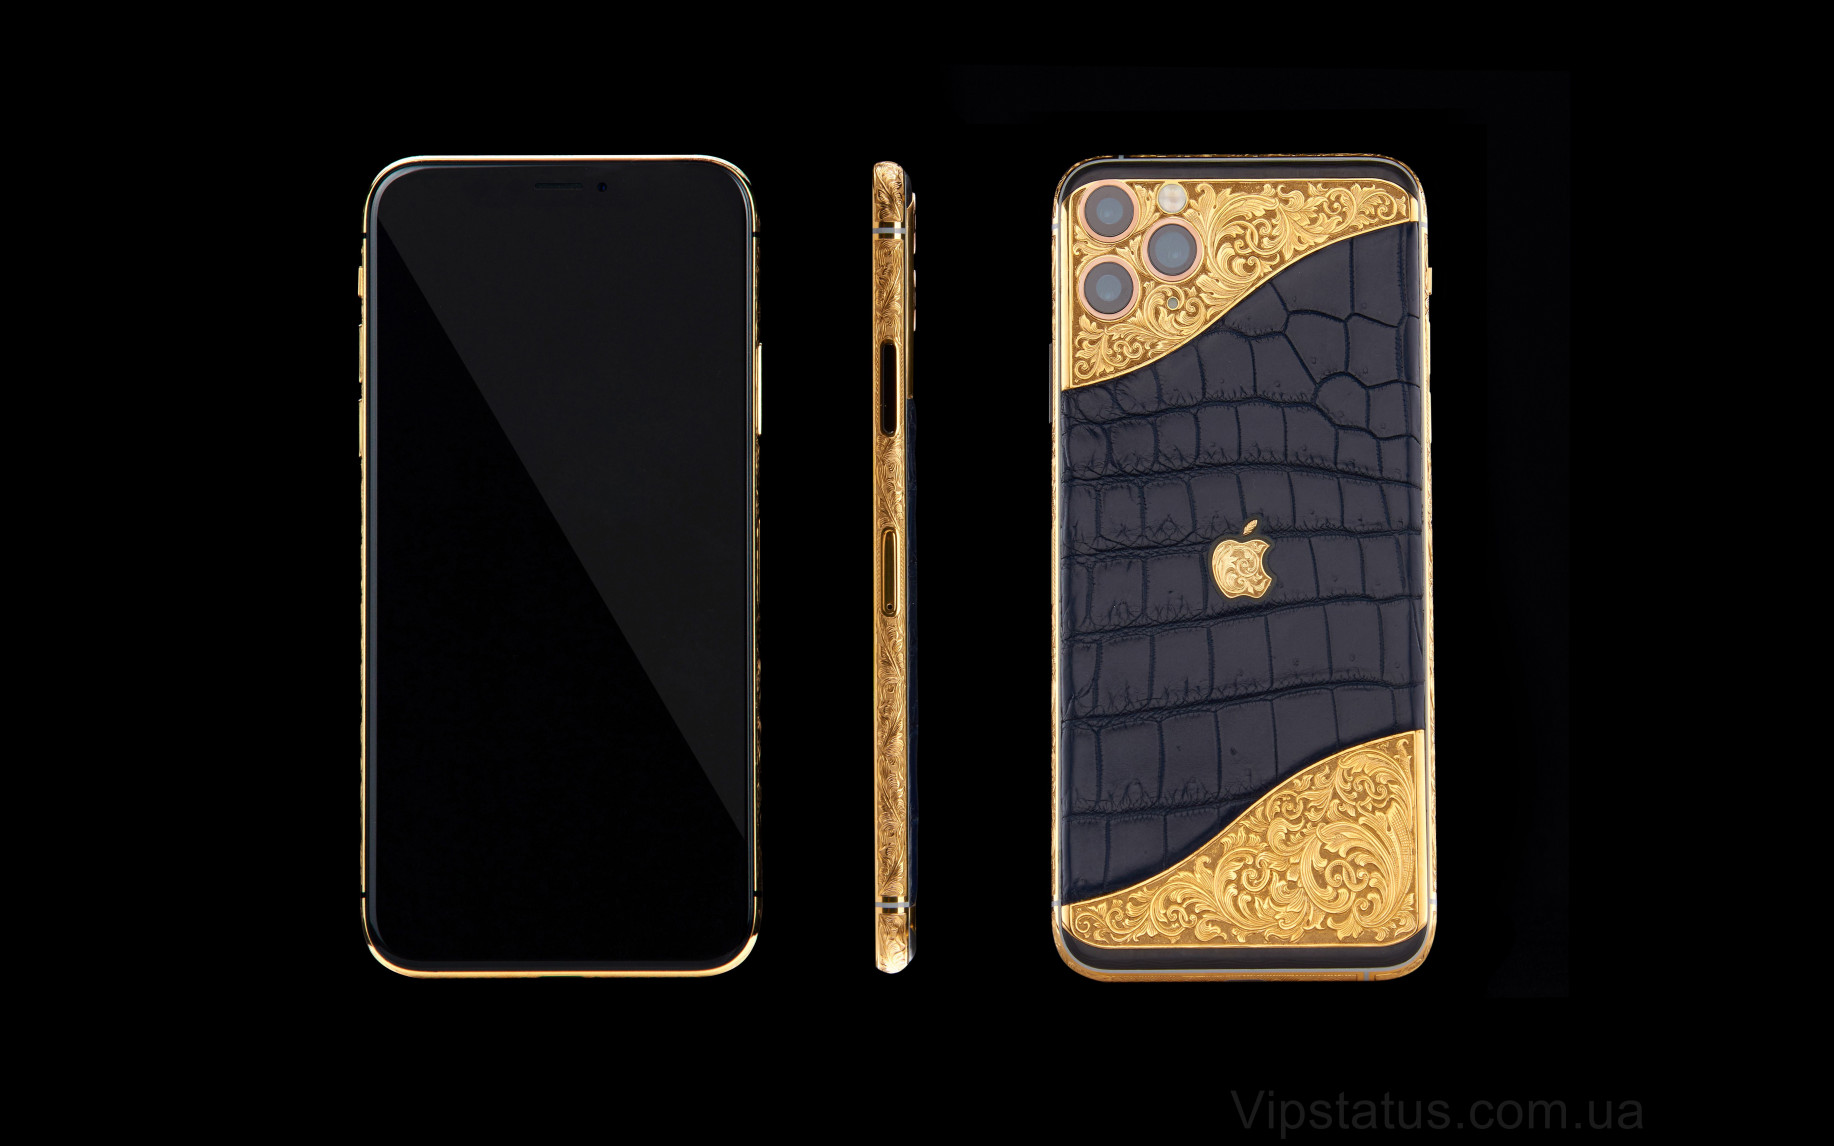 Elite Gold Aristocrate IPHONE 11 PRO 512 GB Gold Aristocrate IPHONE 11 PRO 512 GB image 6